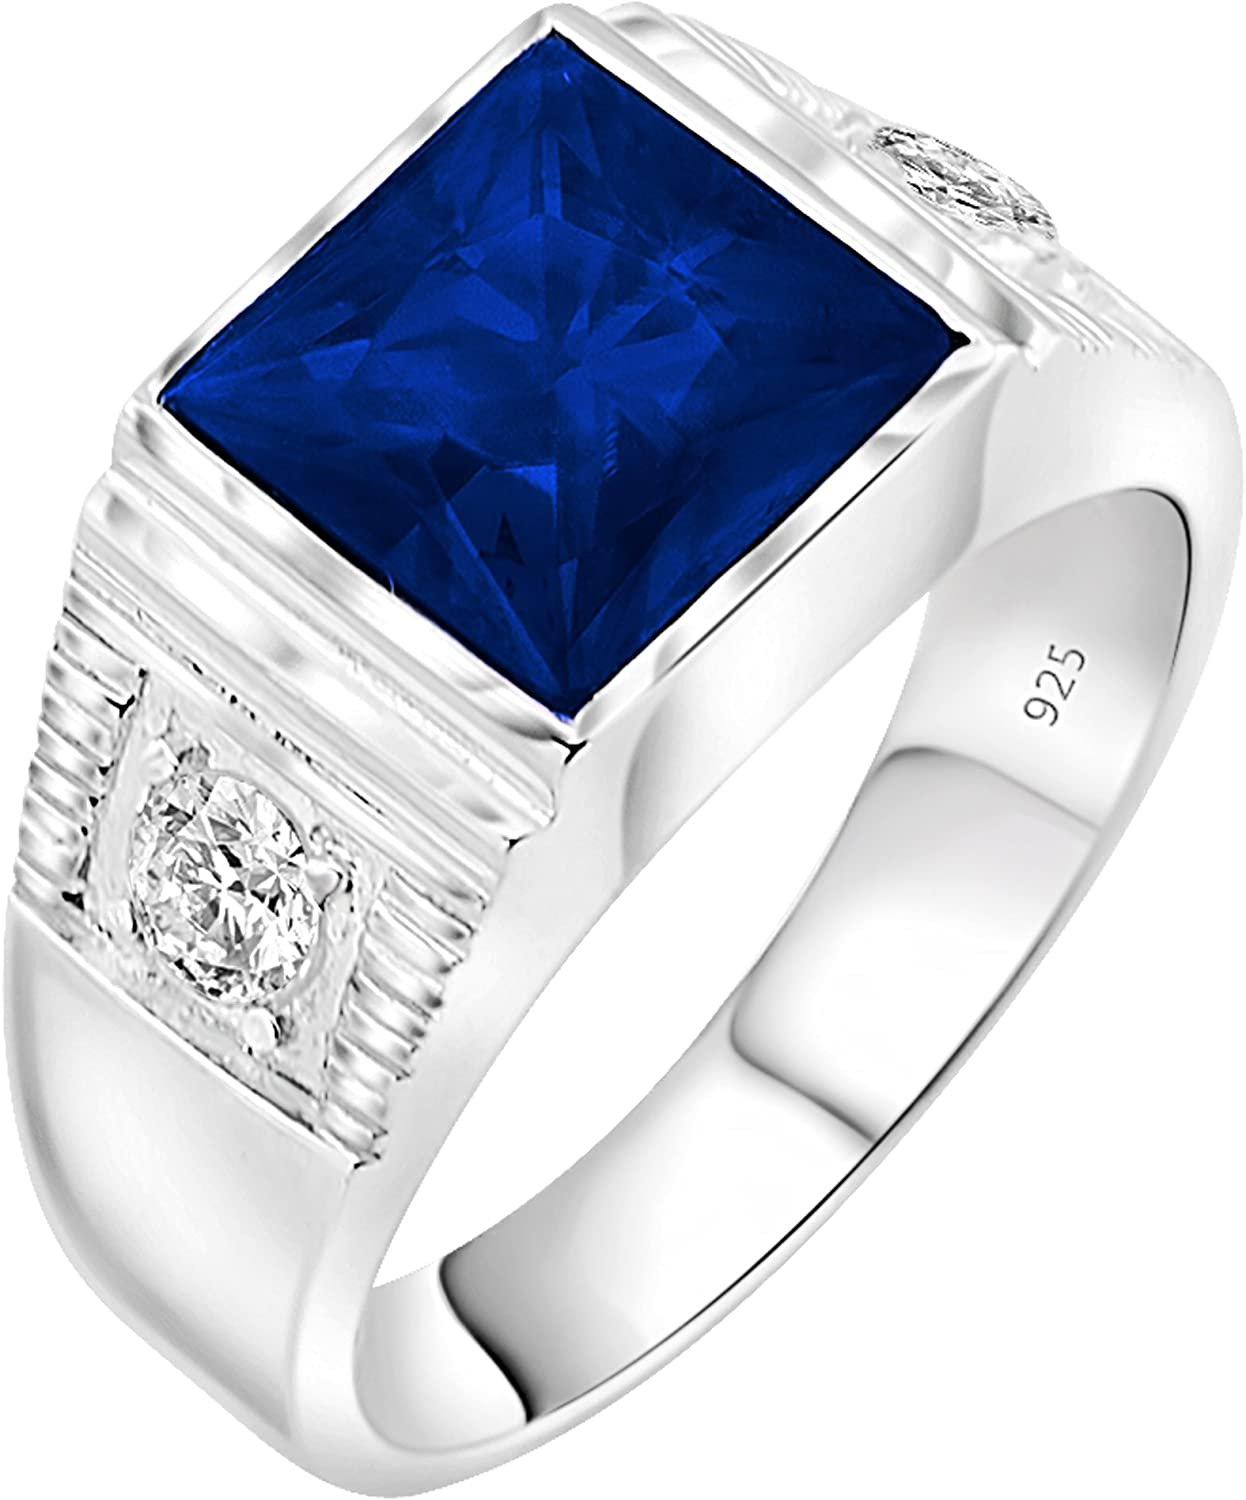 [2-5 Days Delivery] Men's Sterling Silver .925 Ring with 3.5ct Blue Princess Cut Center CZ Stone and 2 White Cubic Zirconia (CZ) Stones